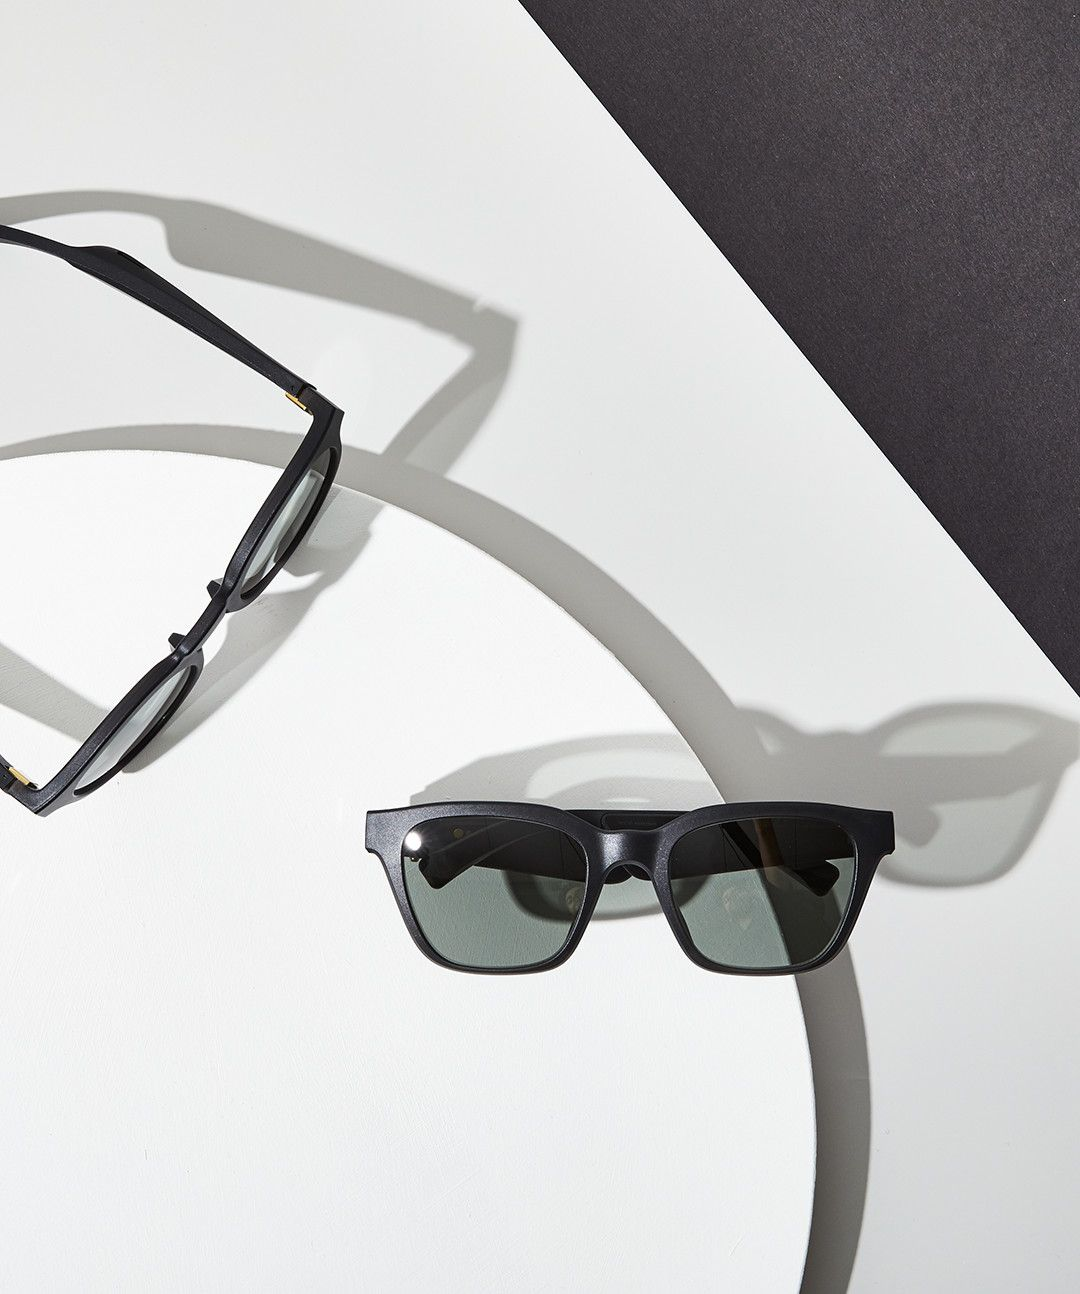 Bose Frames Play Music for You (And Only You)—No Headphones Required